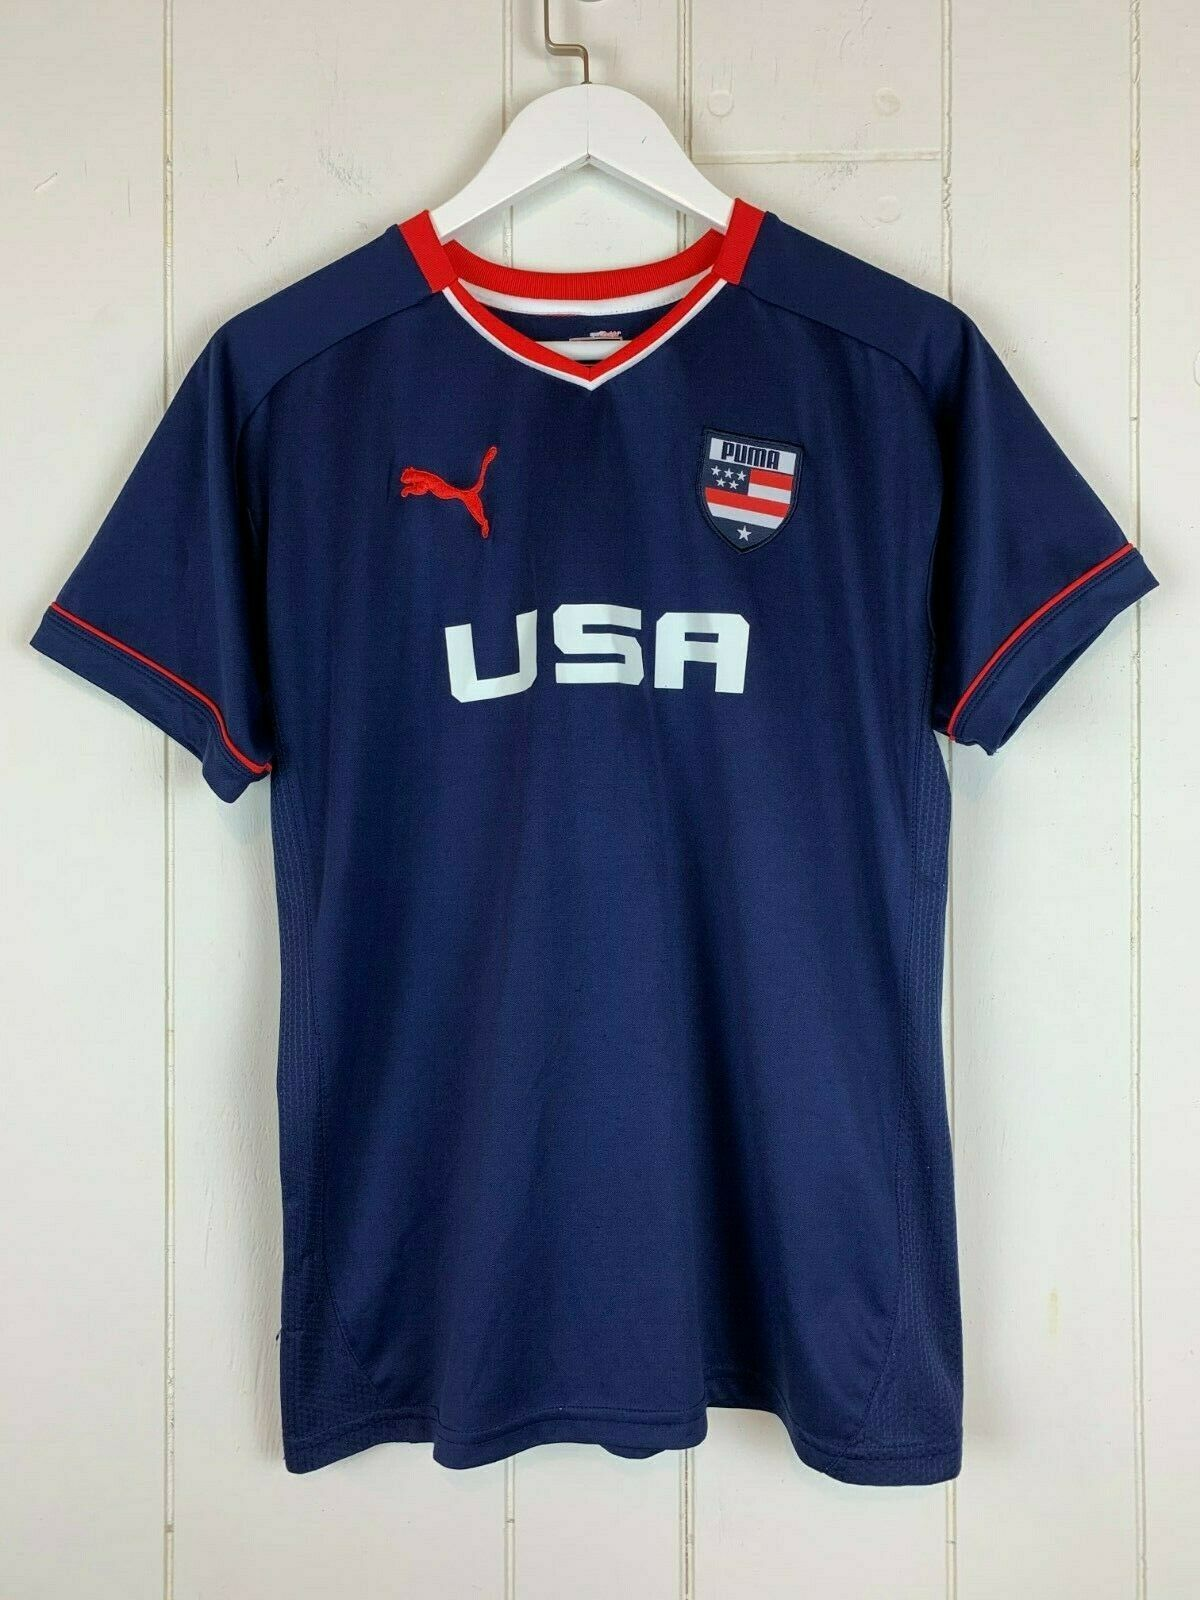 Primary image for USA Soccer Team Jersey Shirt Puma Boys XL Extra Large Navy Blue Red White Patch